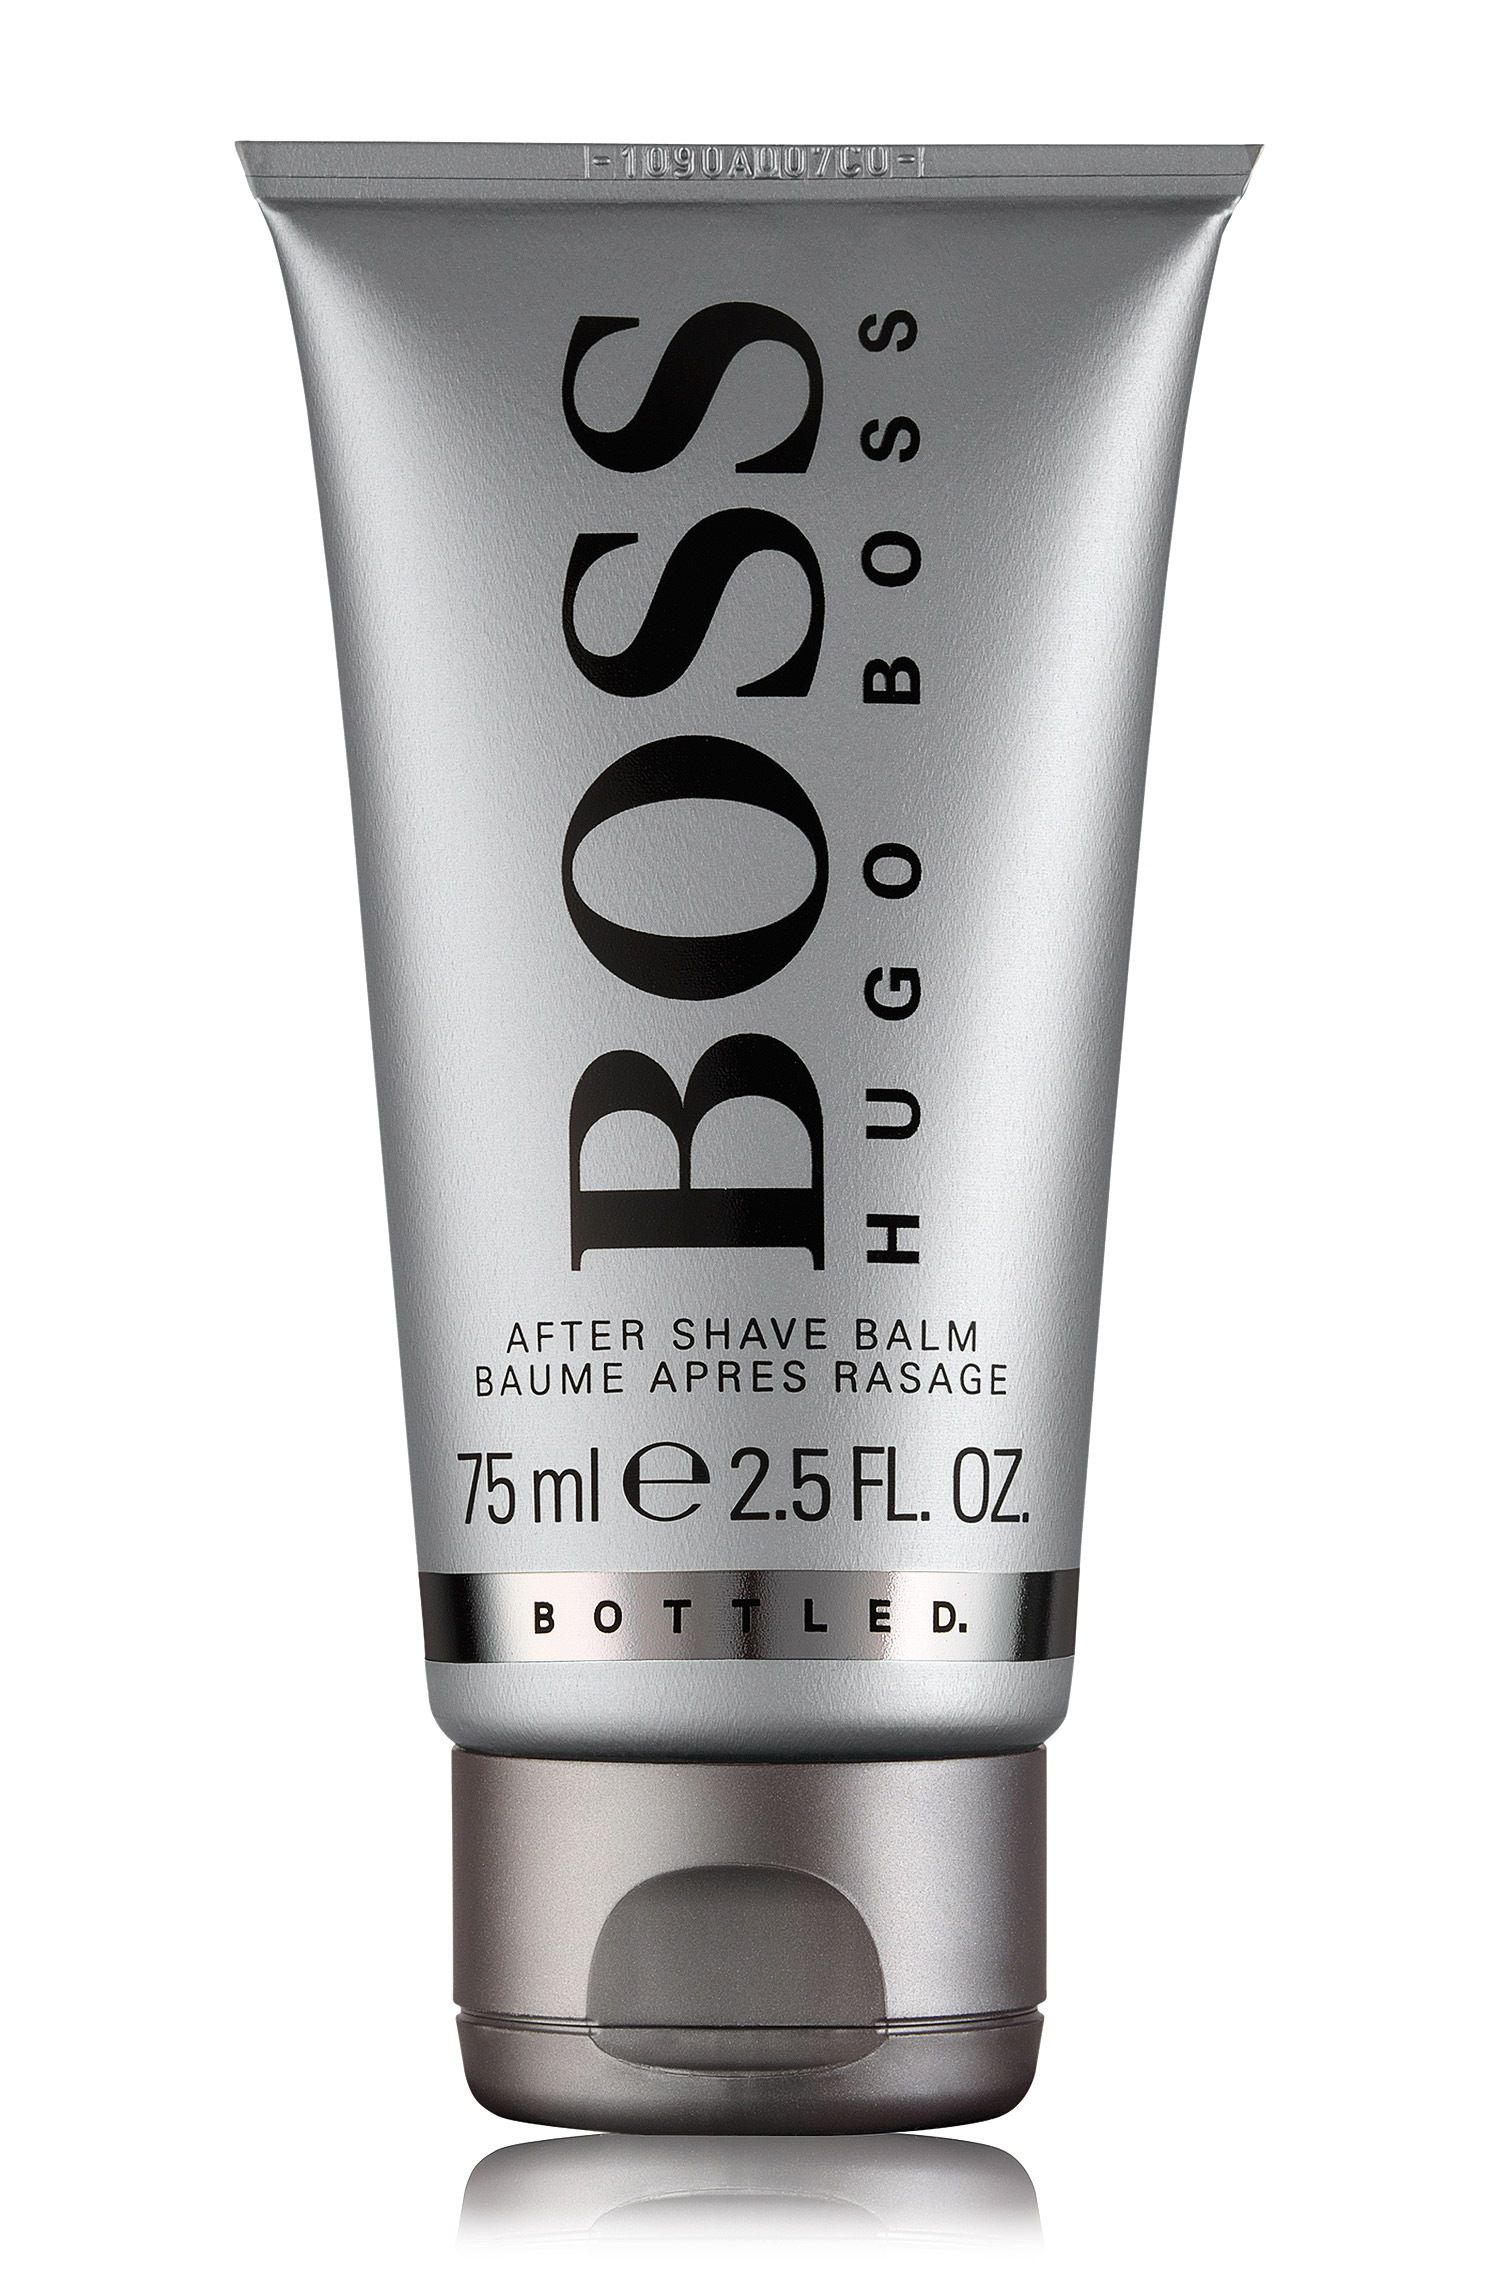 Balsamo dopobarba BOSS Bottled da 75 ml